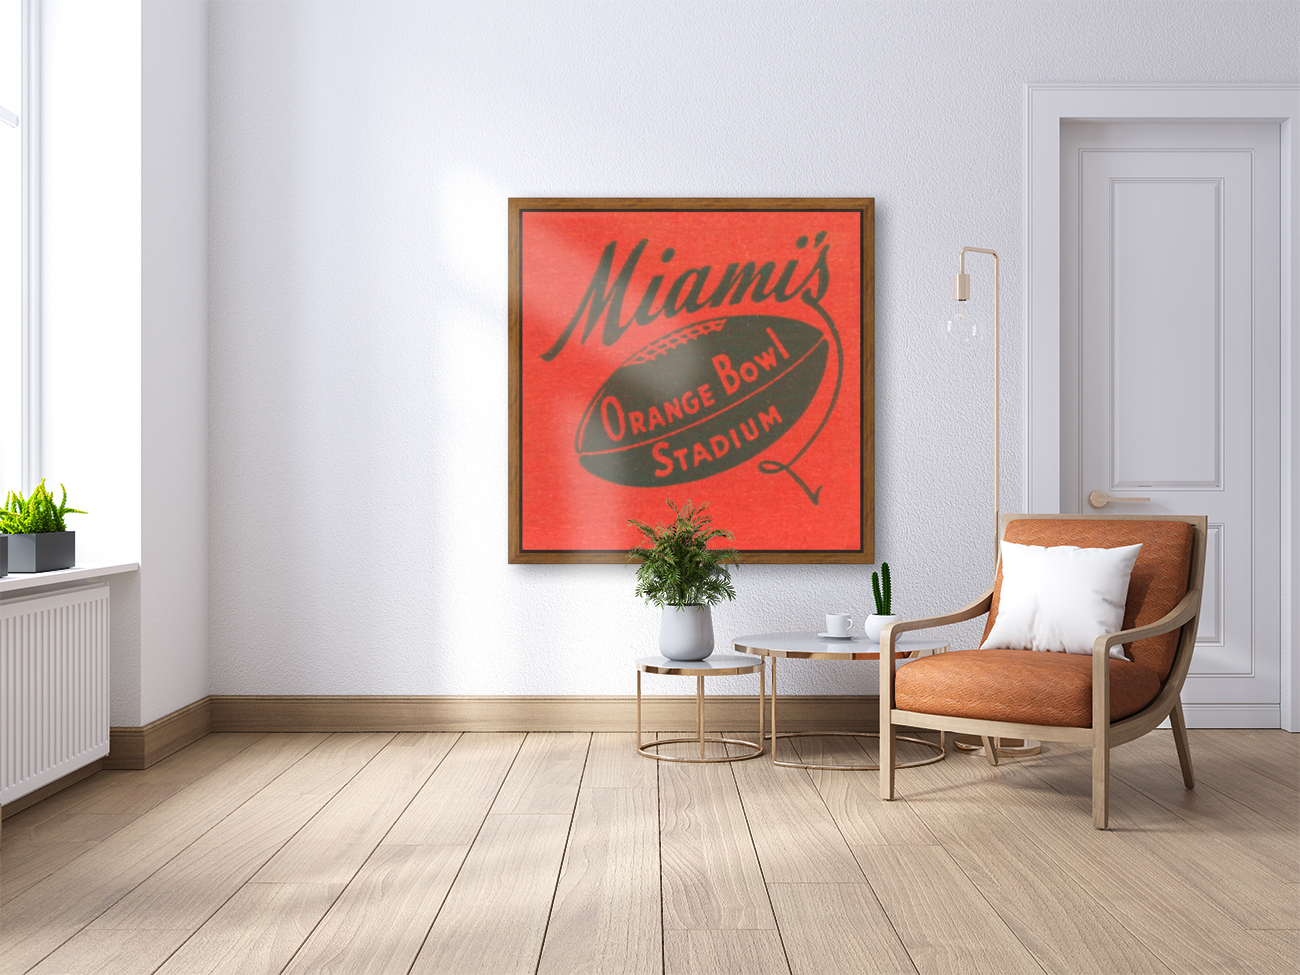 1950 Miami Orange Bowl  Art